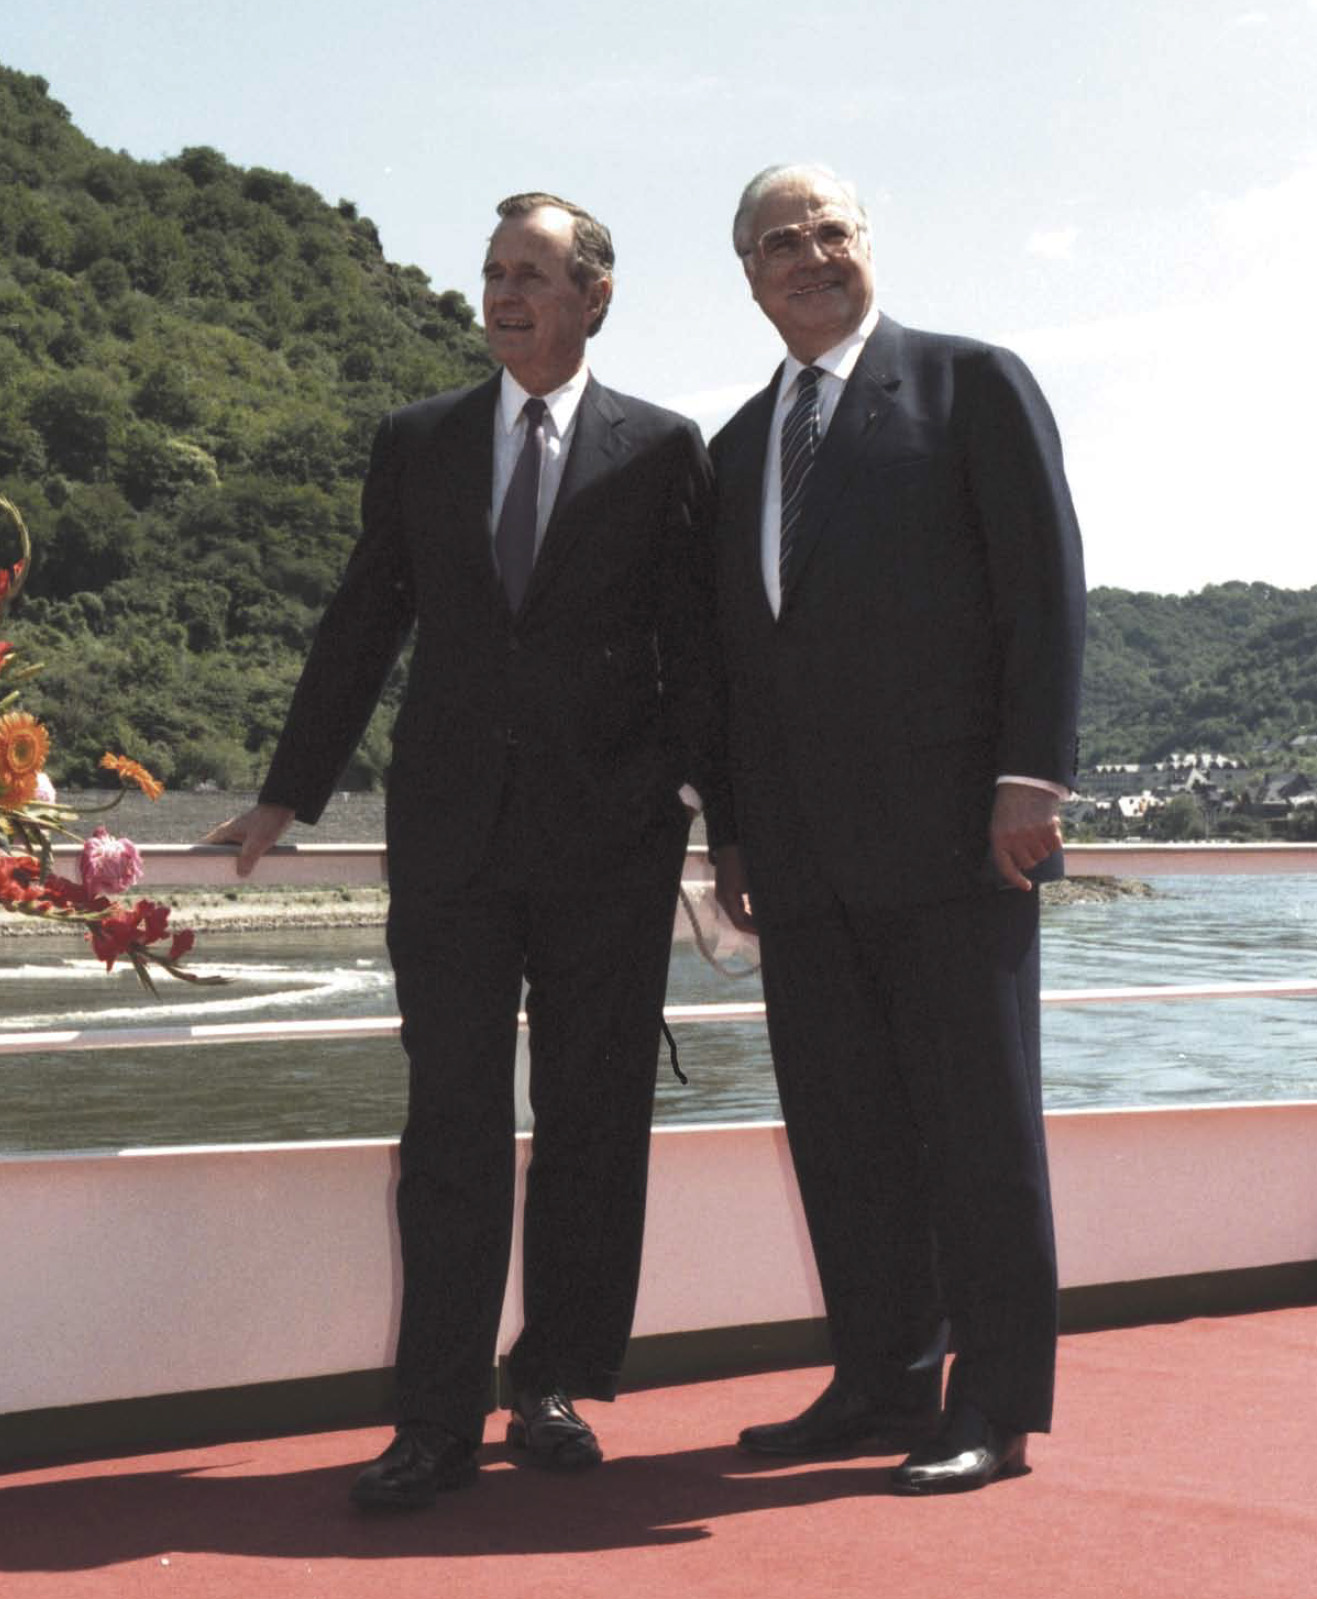 """President Bush and Chancellor Helmut Kohl aboard the riverboat Stolzenfels as they cruise the Rhine River, West Germany on May 31, 1989. President Bush's excellent personal relationship with Chancellor Kohl was the prerequisite for Kohl's daring moves for German reunification in late 1989 and 1990. Bush encouraged Kohl's political ambitions and thus became the """"godfather"""" of German reunification."""